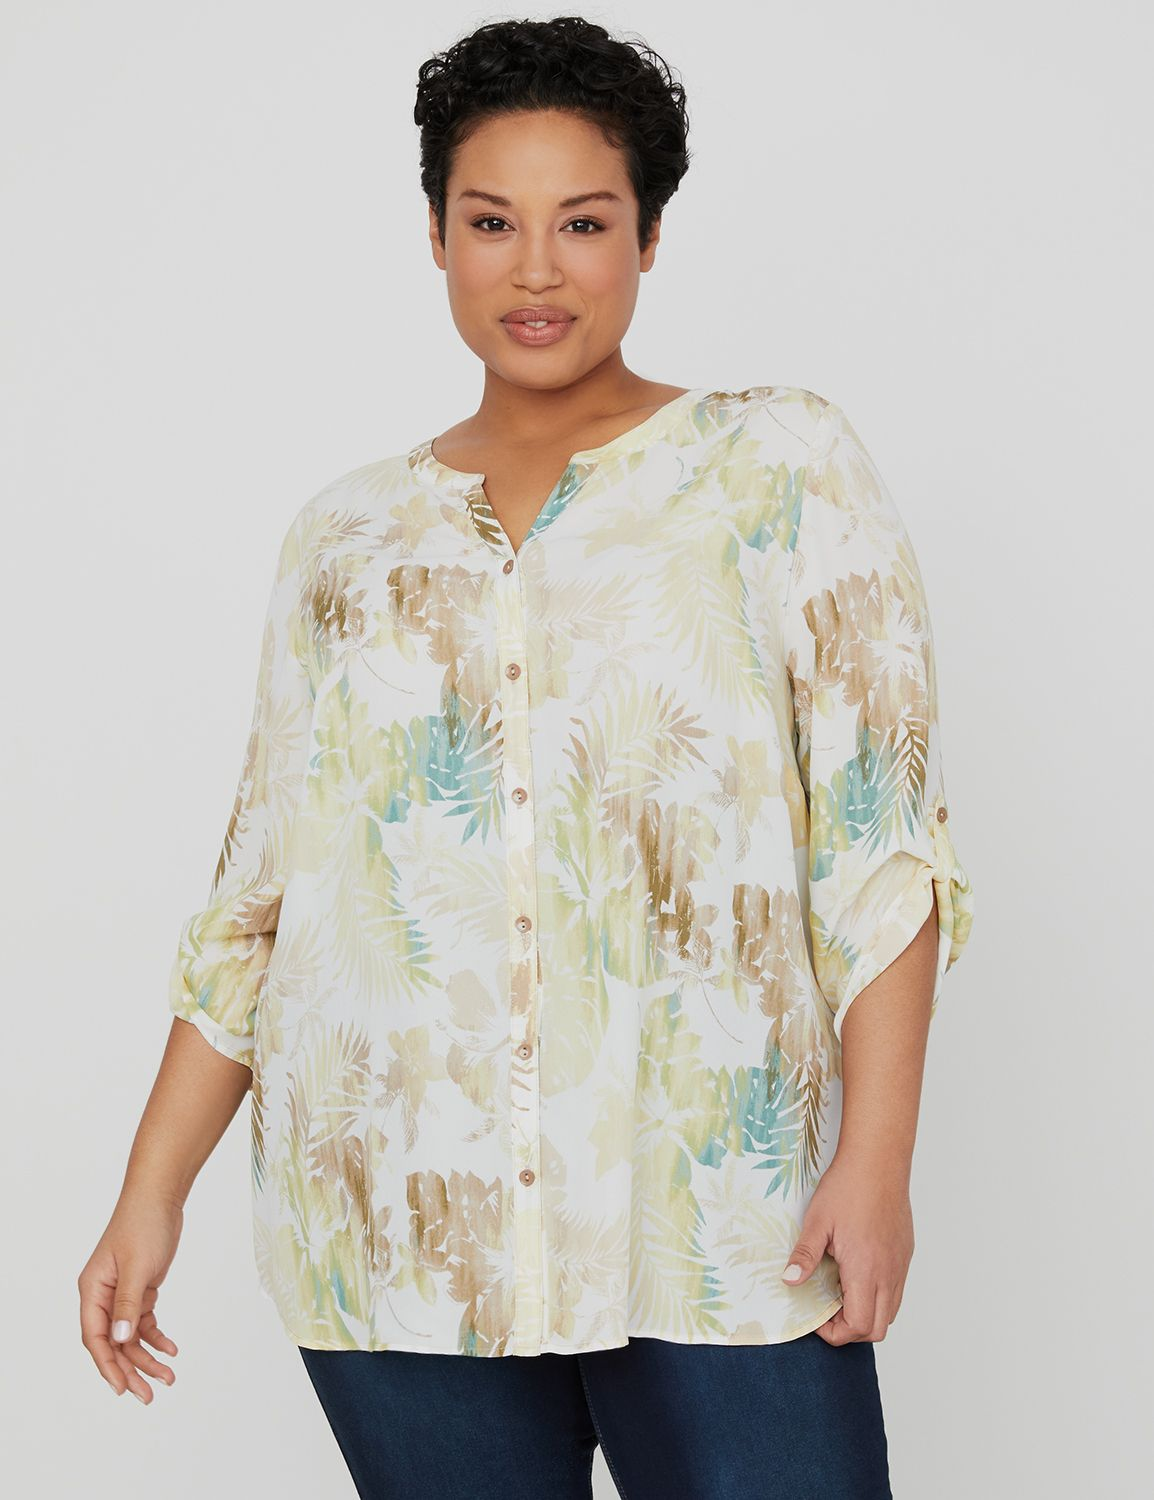 Canyon Shade Buttonfront Top 1090503 Opaque GGT Bttn Front Blous MP-300103555